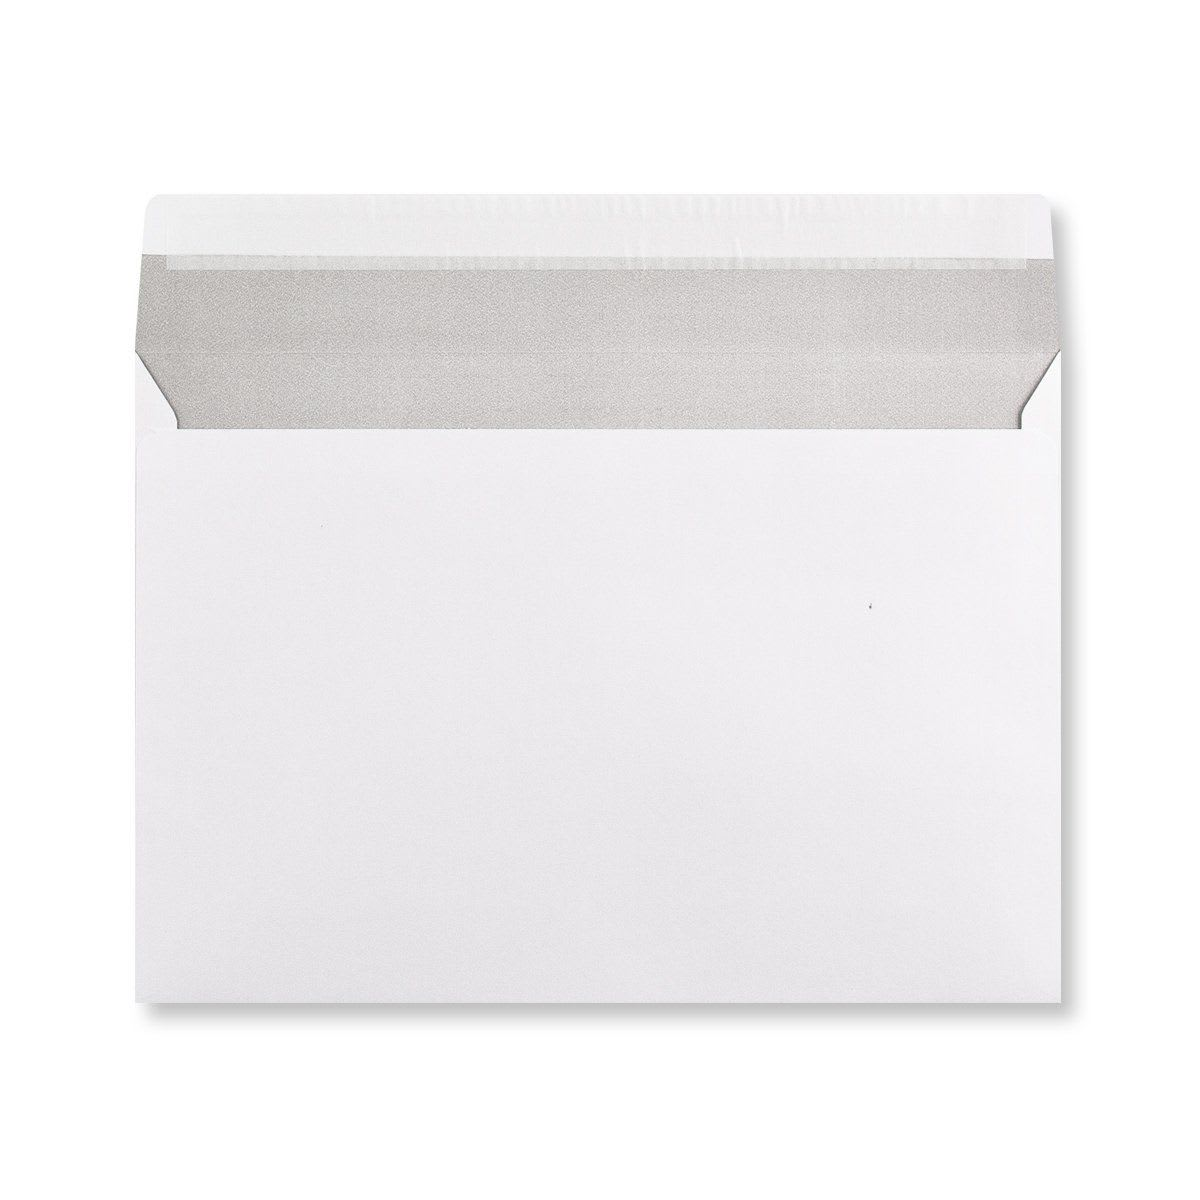 C5 WHITE WALLET PEEL AND SEAL WINDOW 120GSM GREY WASH OPAQUE